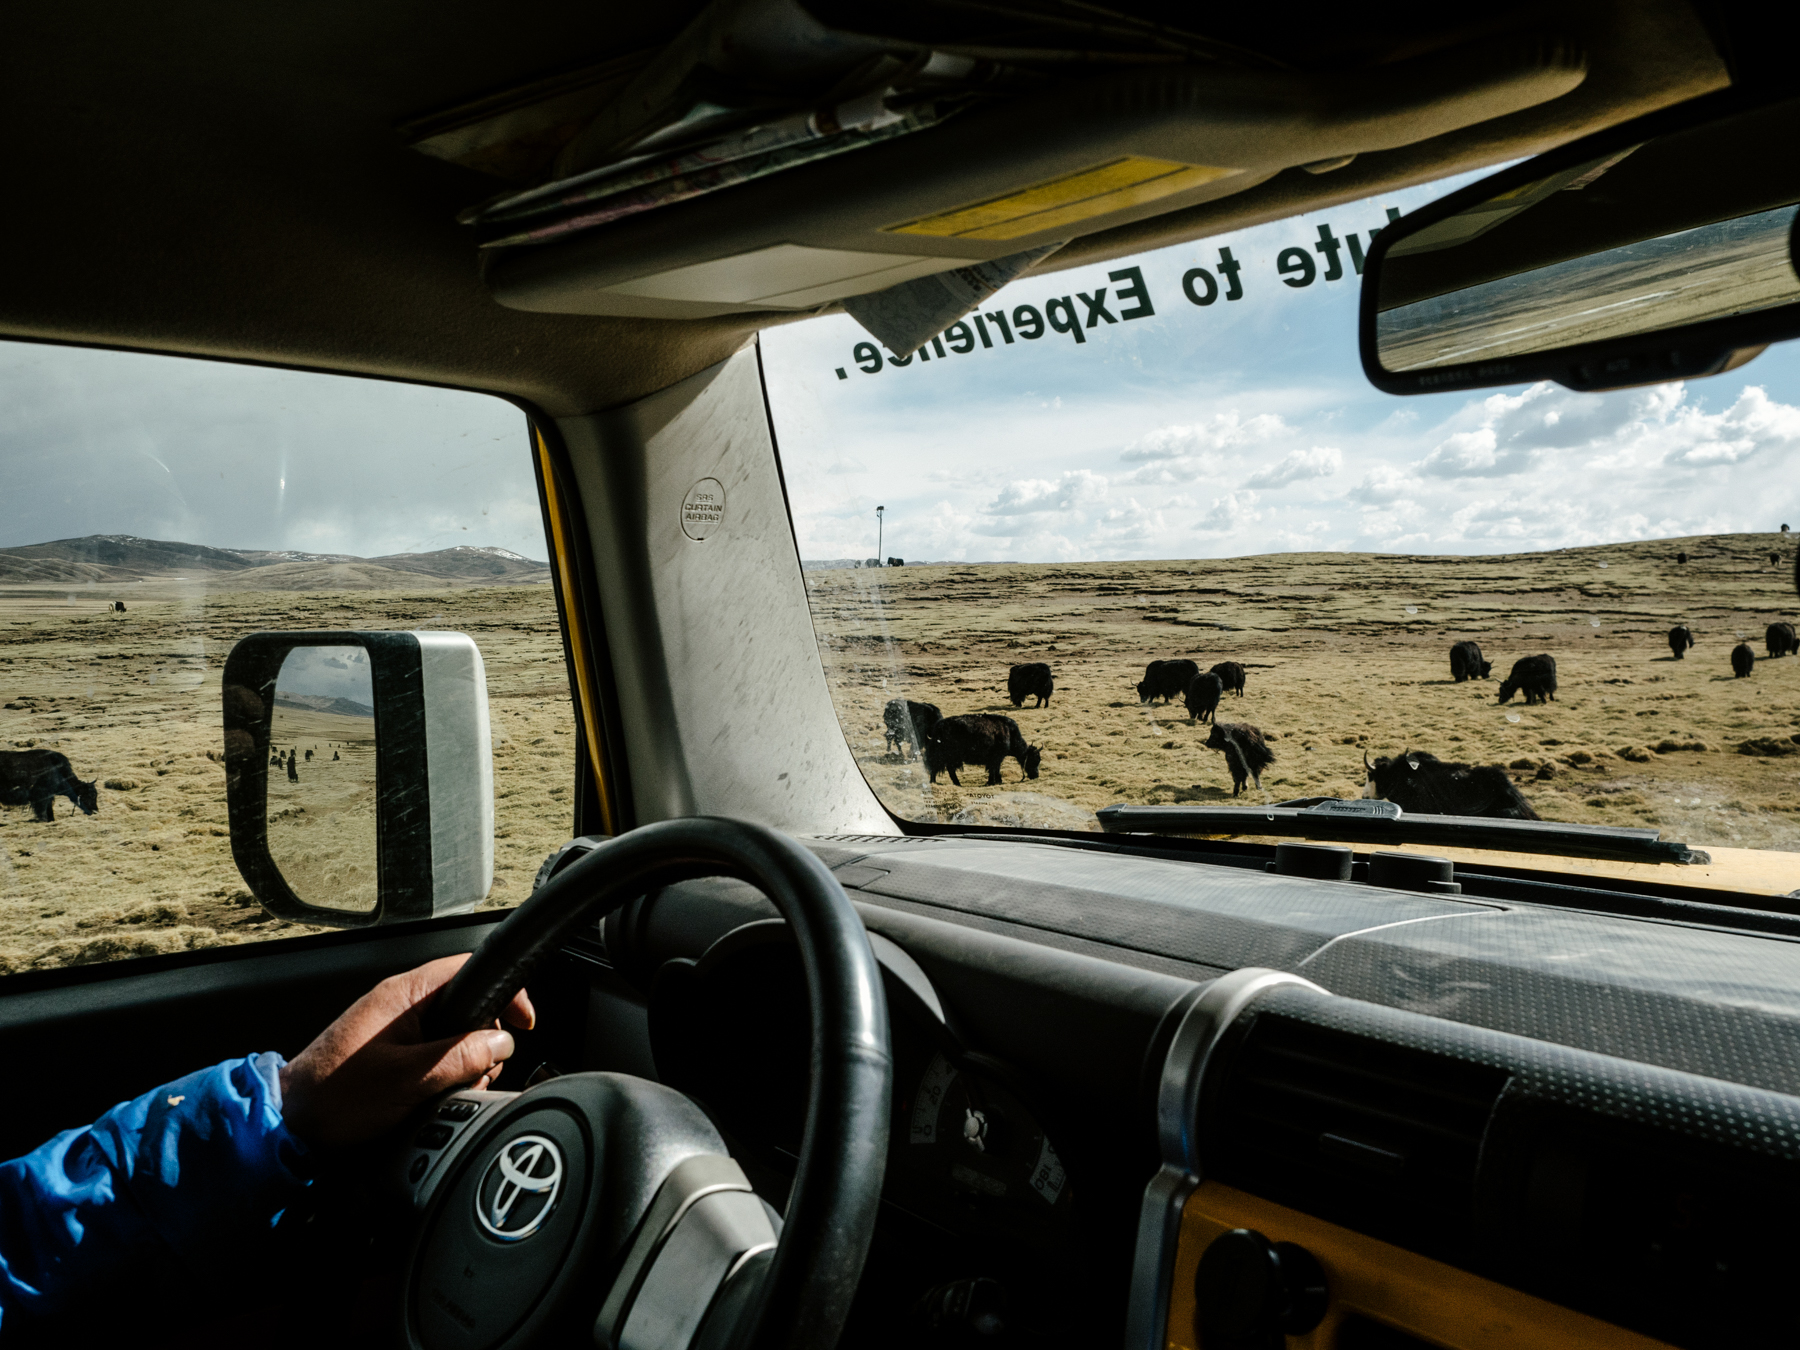 Yang drives past grazing yaks in the Sanjiangyuan National Nature Reserve in Qinghai province. In an effort to address a record dry spell in the Yellow River in the 1990s, as well as other environmental issues, the government established the Sanjiangyuan Reserve to protect the river's source in northwest Qinghai province.